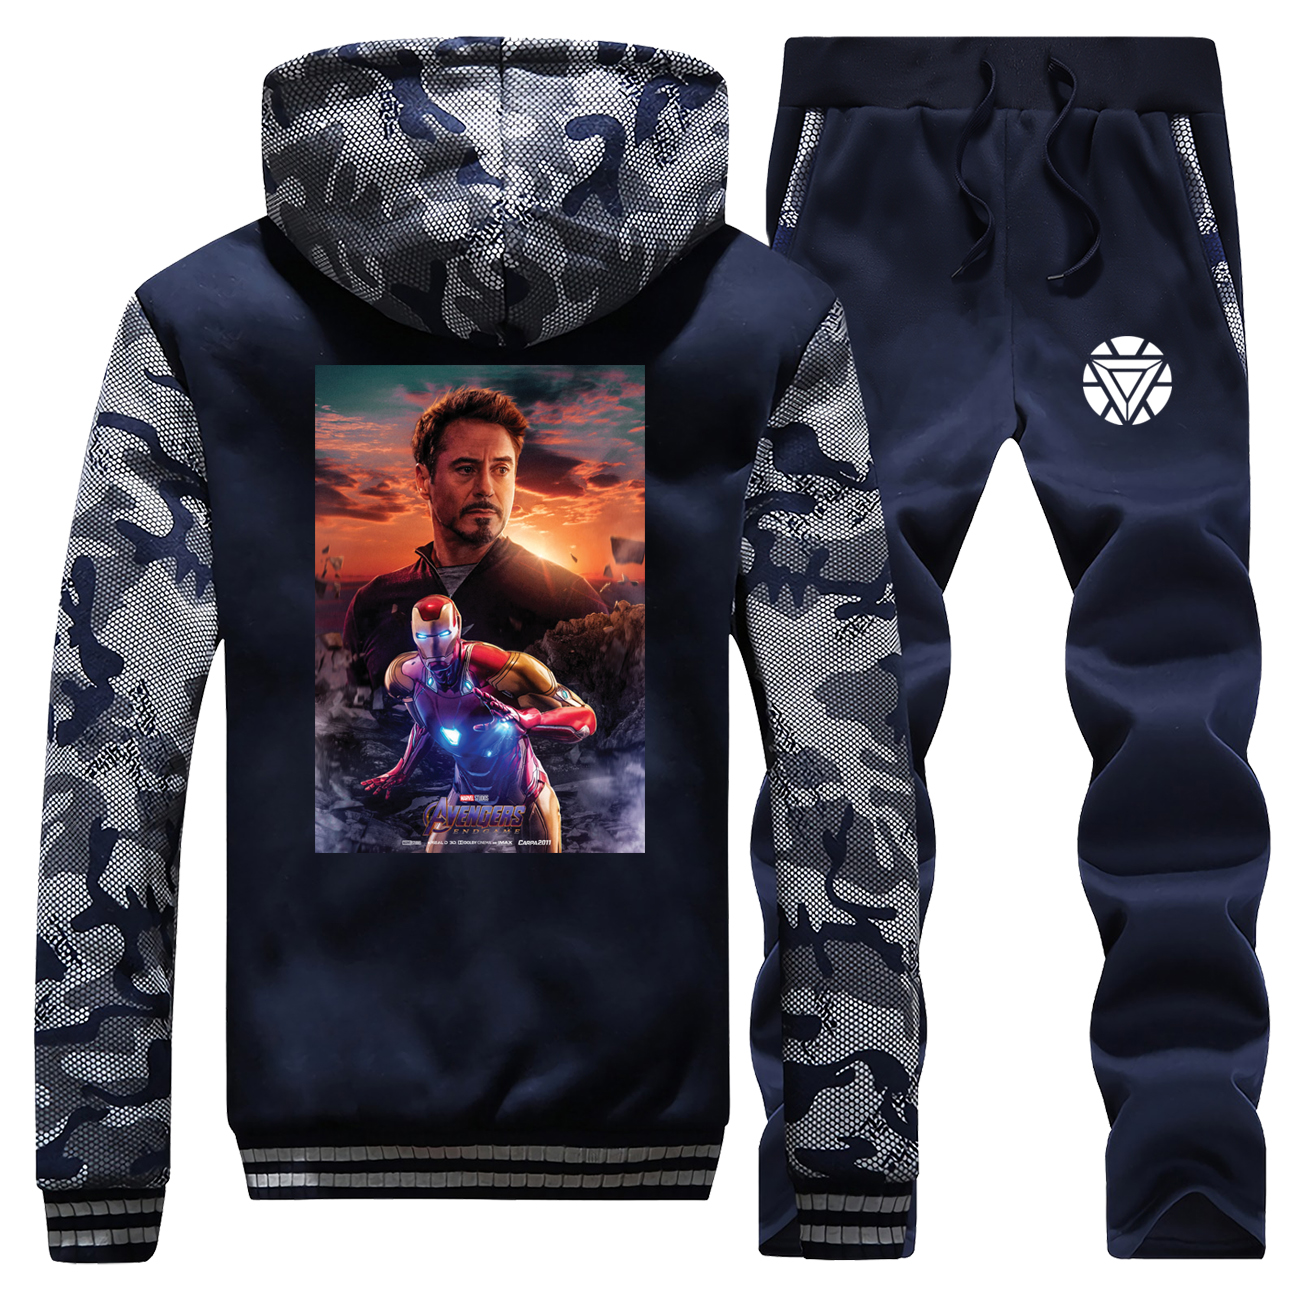 Avengers Endgame Print Hooded Men Streetwear Raglan Camouflage Winter 2019 New Iron Man Coat Thick Suit Hoodie+Pants 2 Piece Set